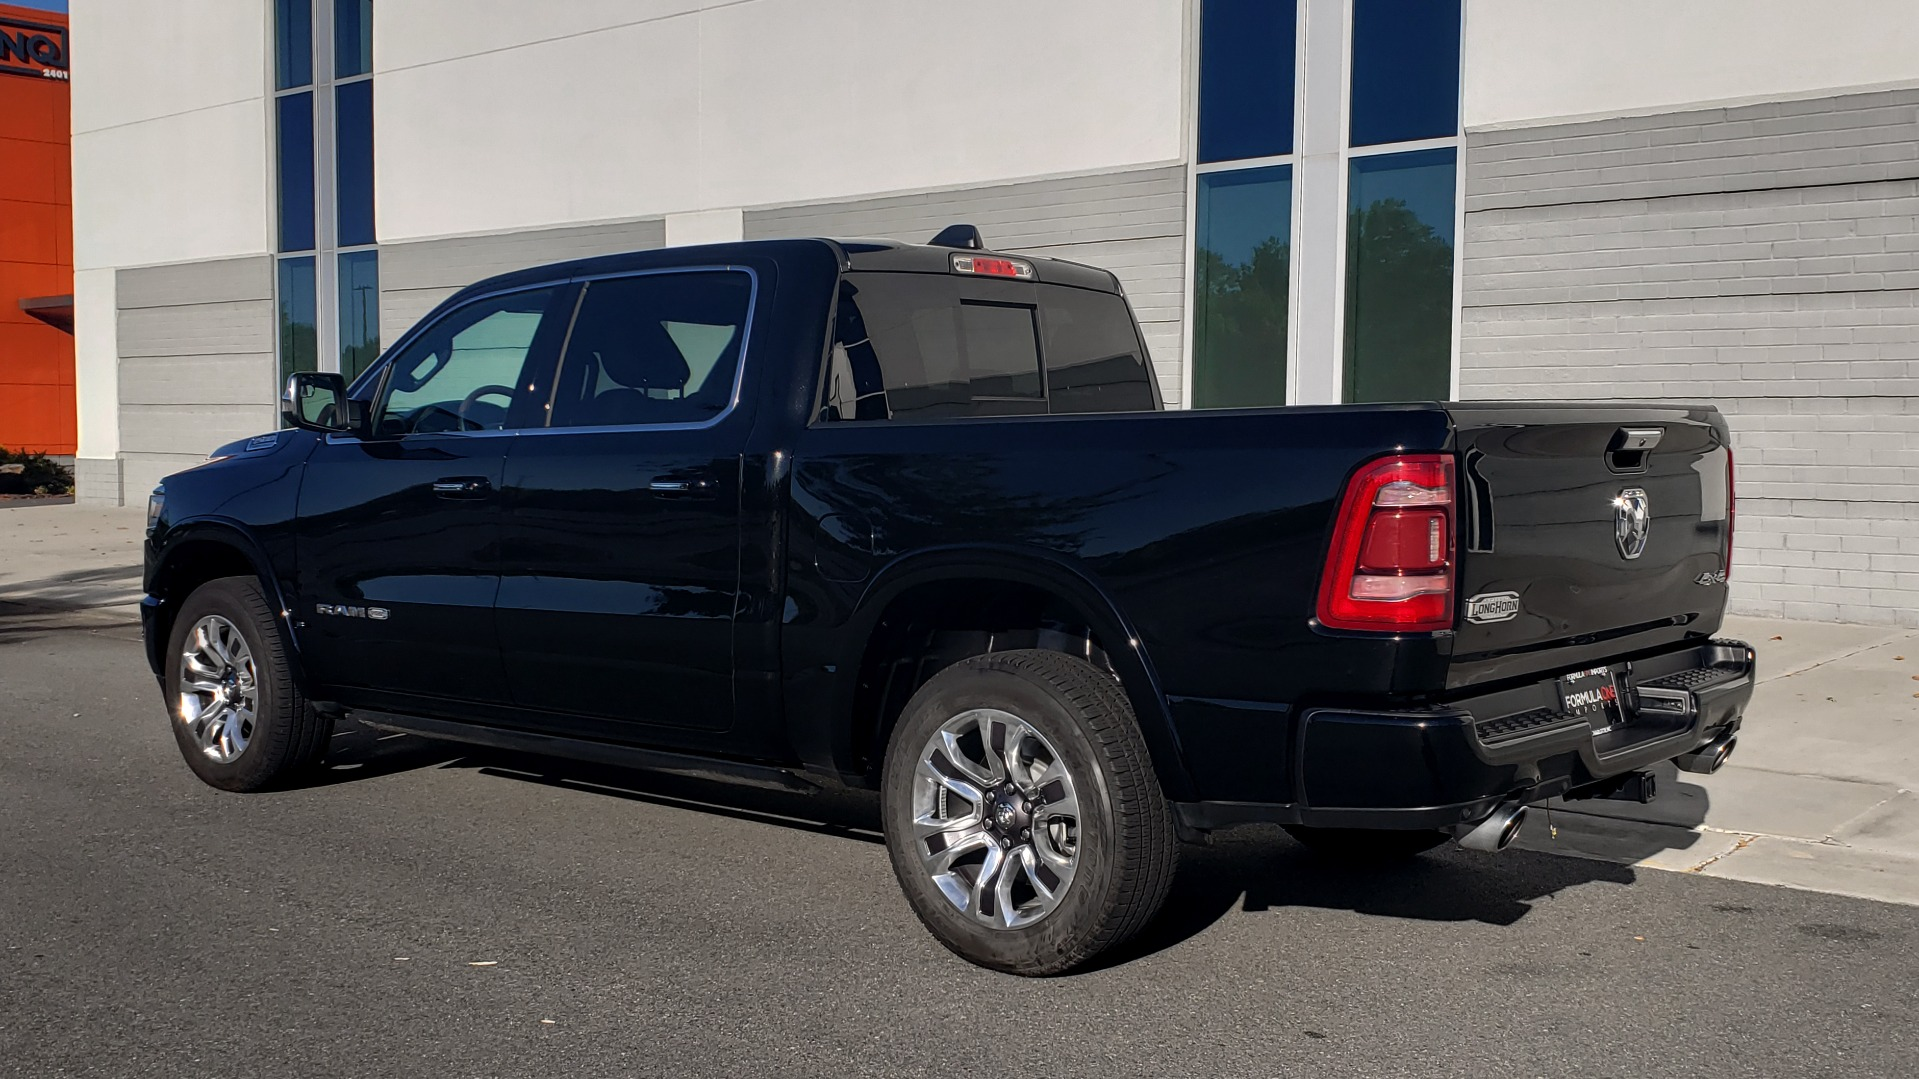 Used 2021 Ram 1500 LONGHORN LIMITED 4X4 / 5.7L HEMI / CREWCAB / H/K SND / PANO-ROOF / REARVIEW for sale $65,999 at Formula Imports in Charlotte NC 28227 5